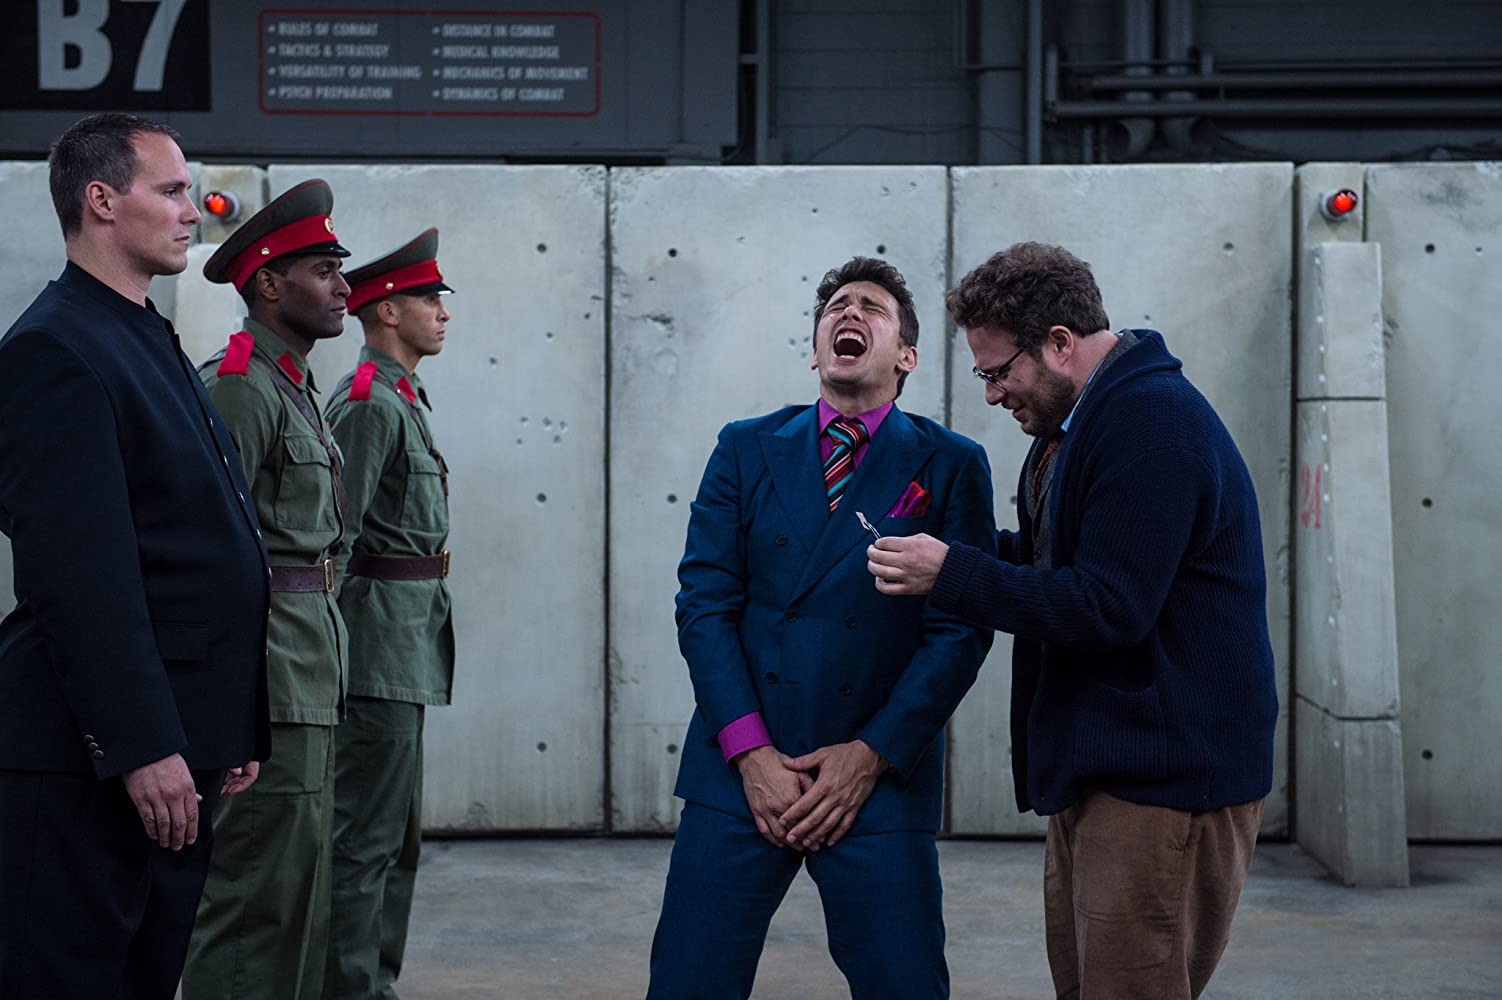 James Franco and Seth Rogen in The Interview (2014)